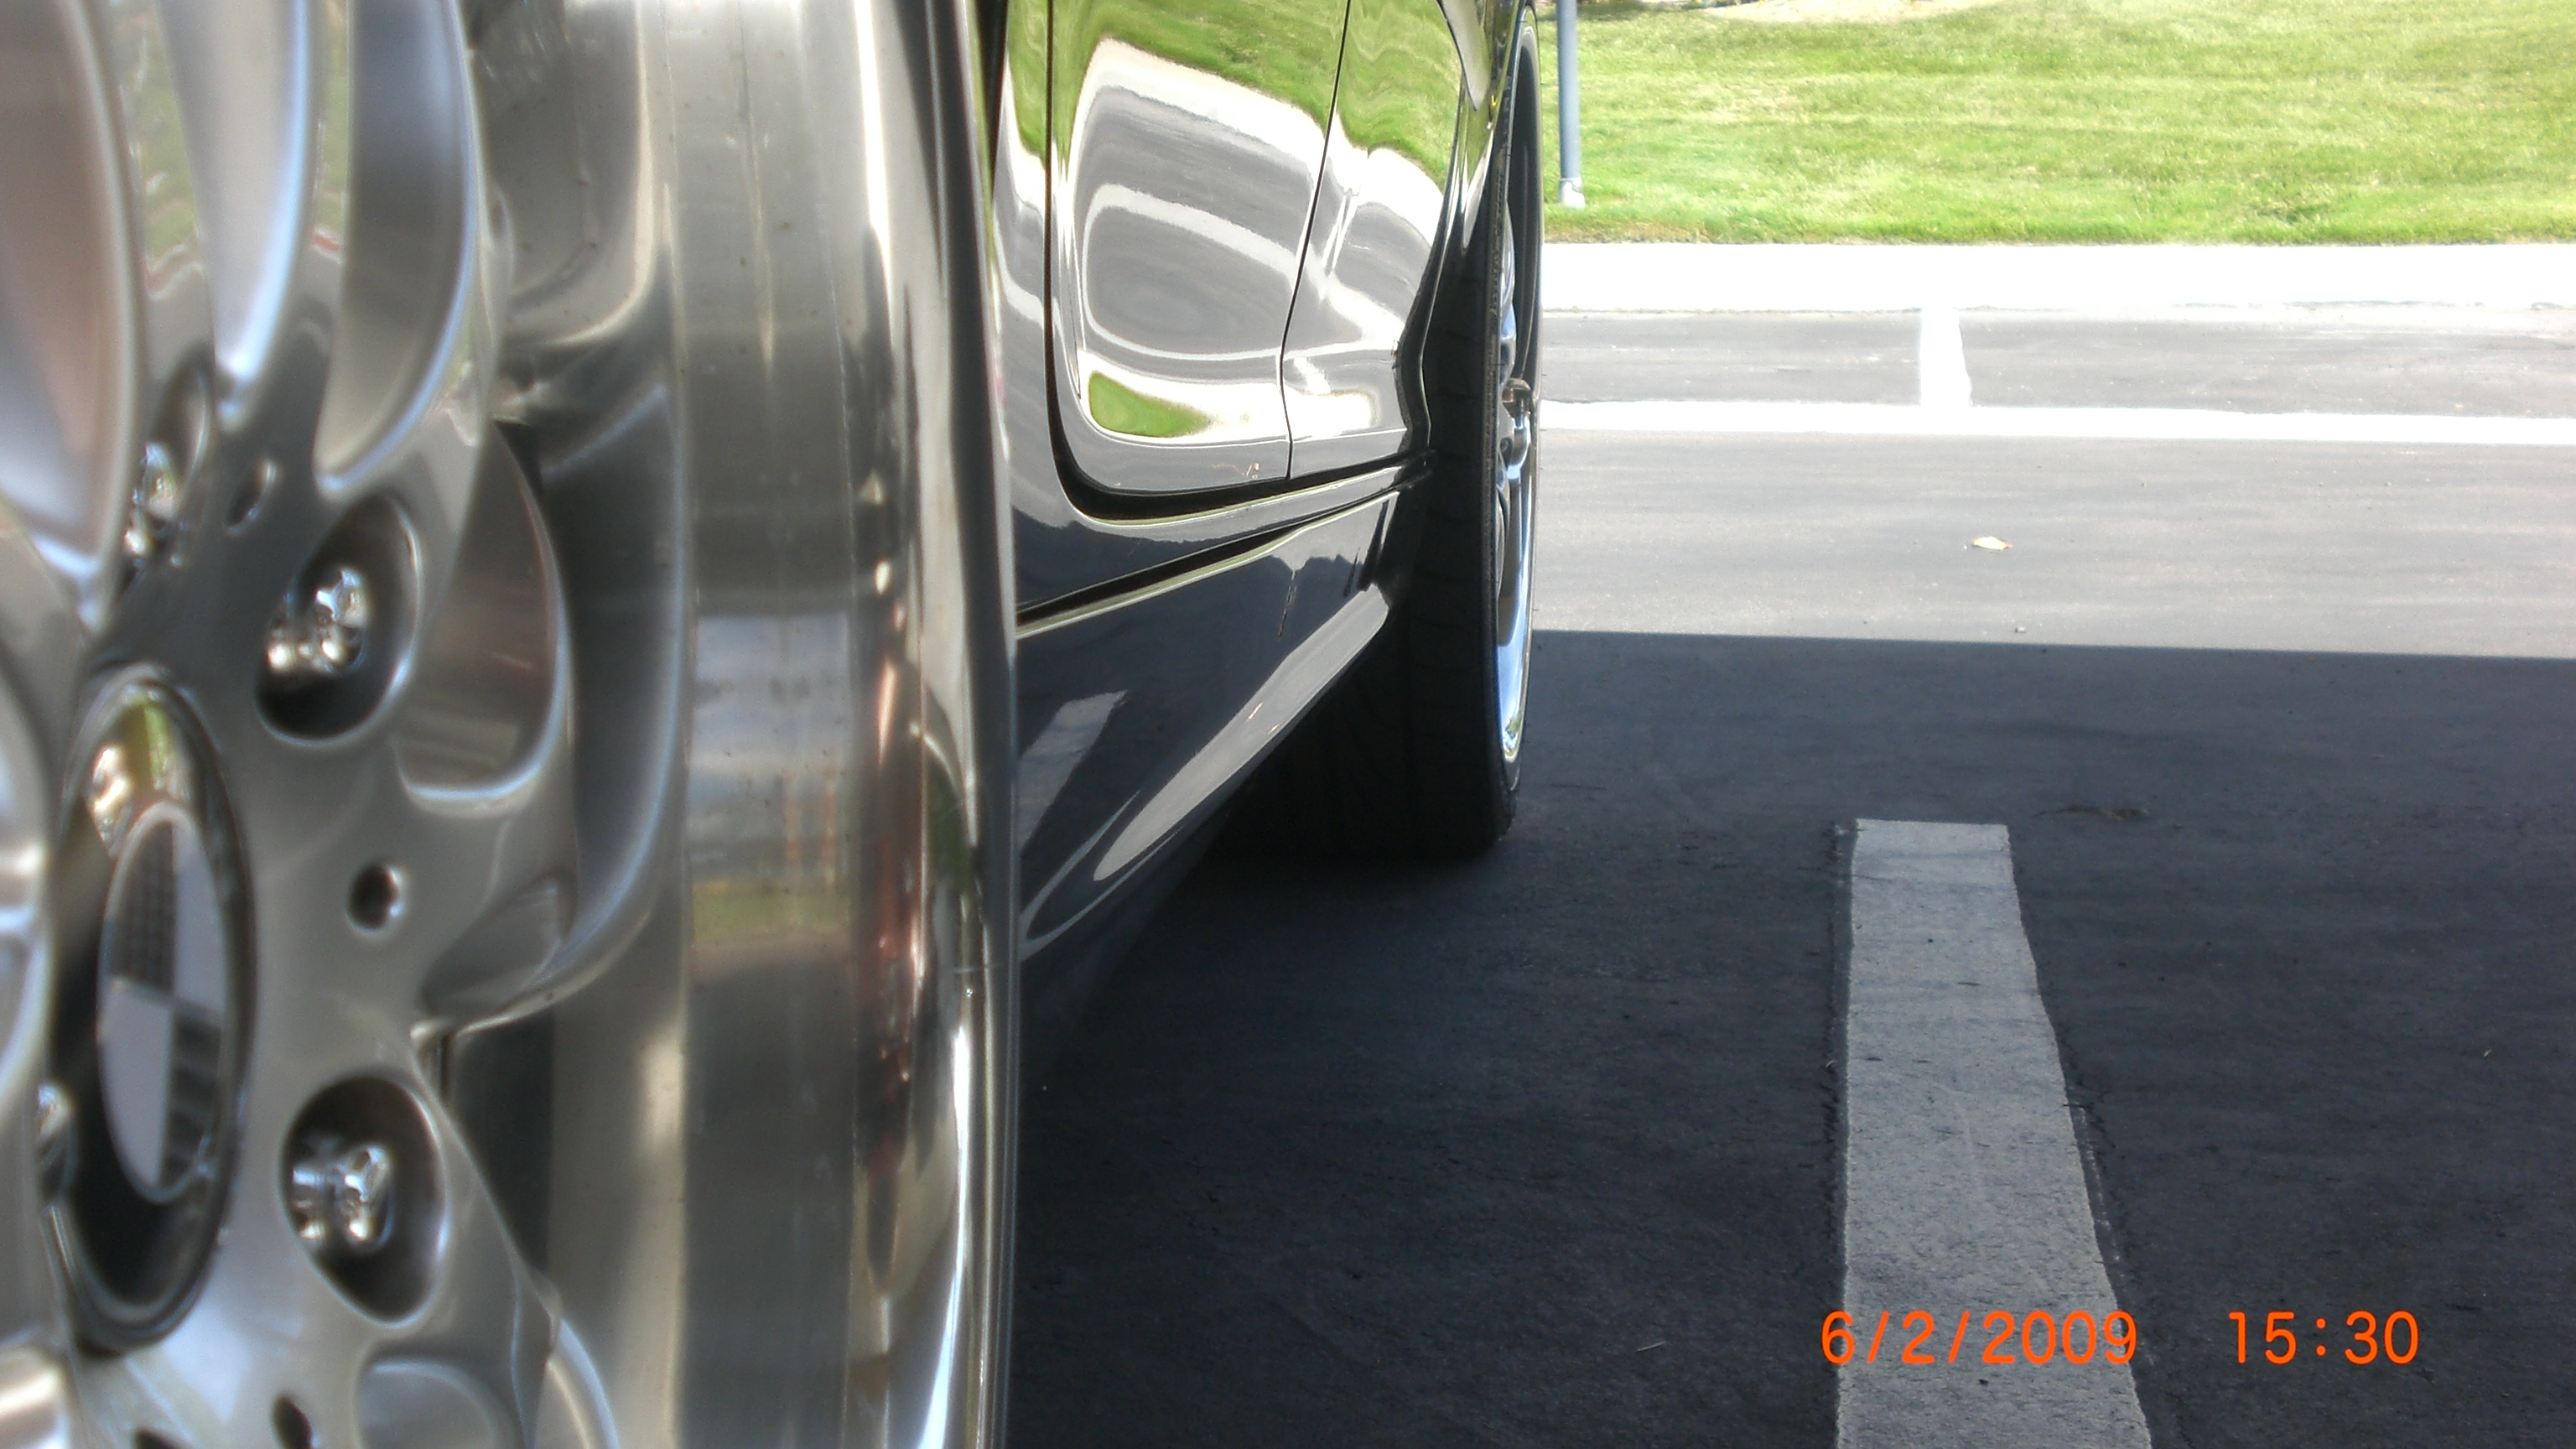 photos ride specs at series cali bmw diego original jay modification san cardomain info